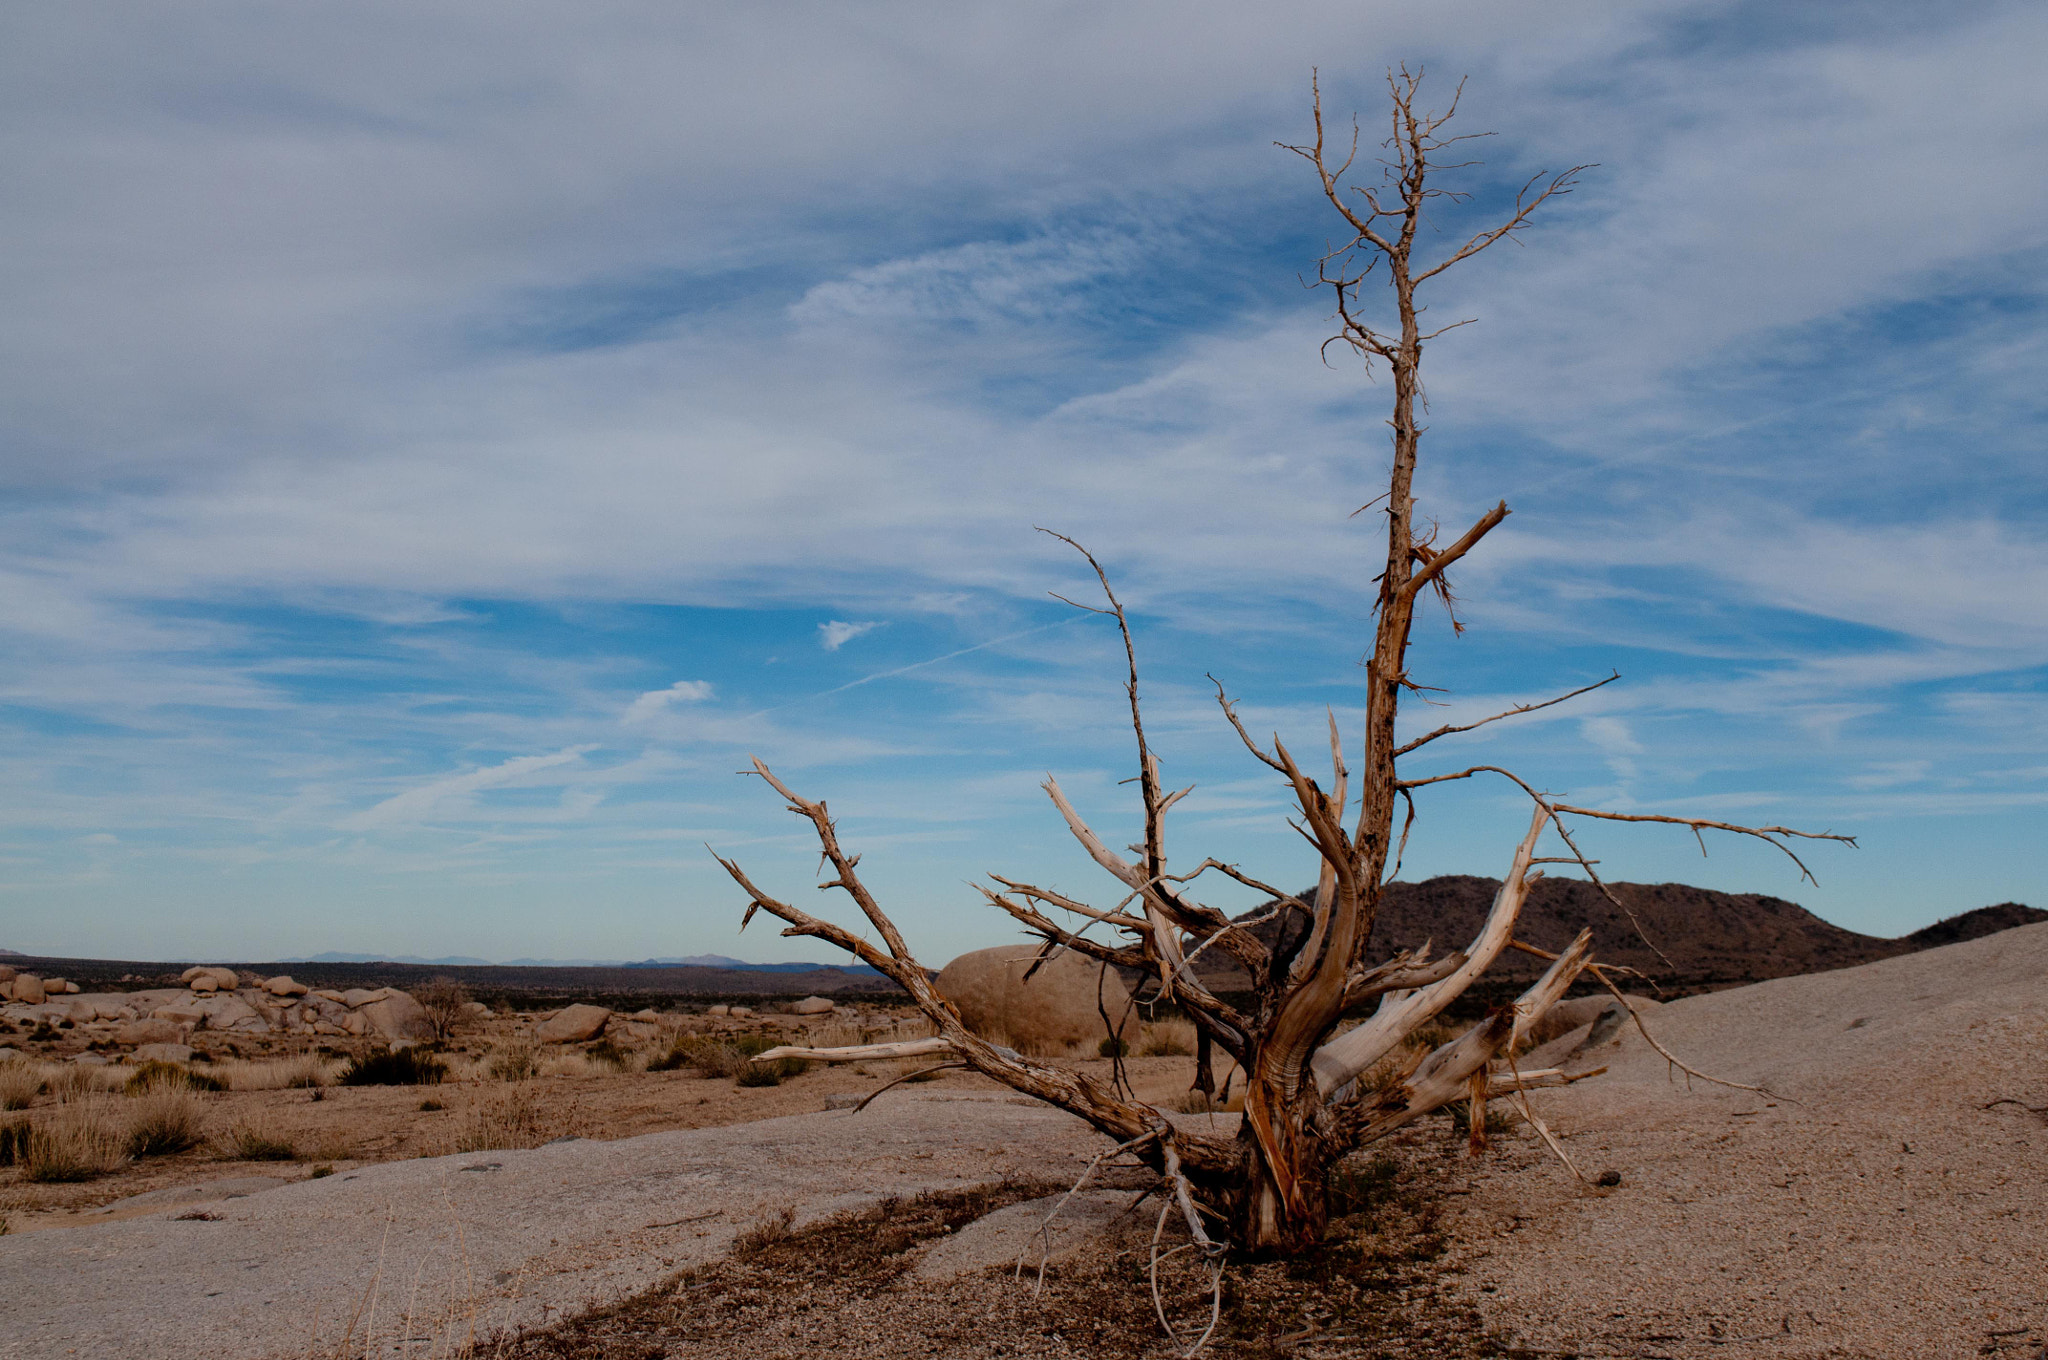 Photograph Ghostly Tree, Mojave Desert by N Simpson on 500px